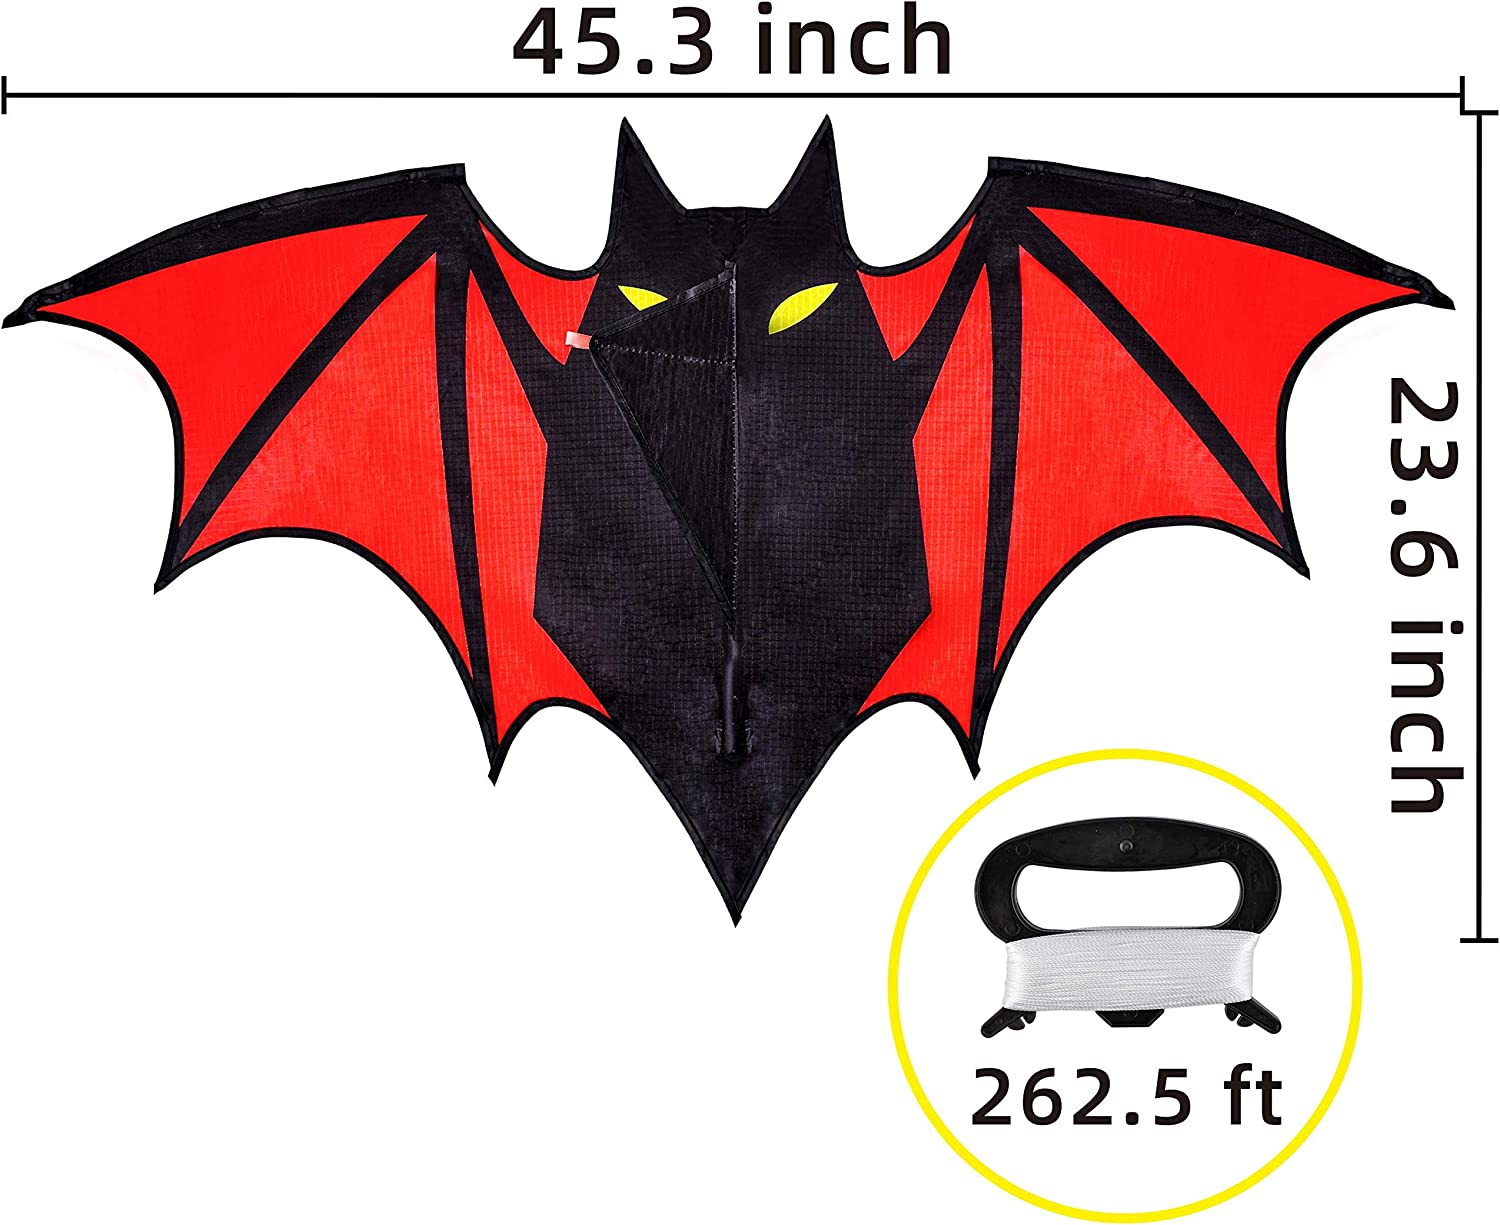 Beginners and Pros to Spend Time with Friends and Family for Outdoor Activity JOYIN Bat Kite Easy to Fly Beginner Kites for Kids and Adults Summer Games